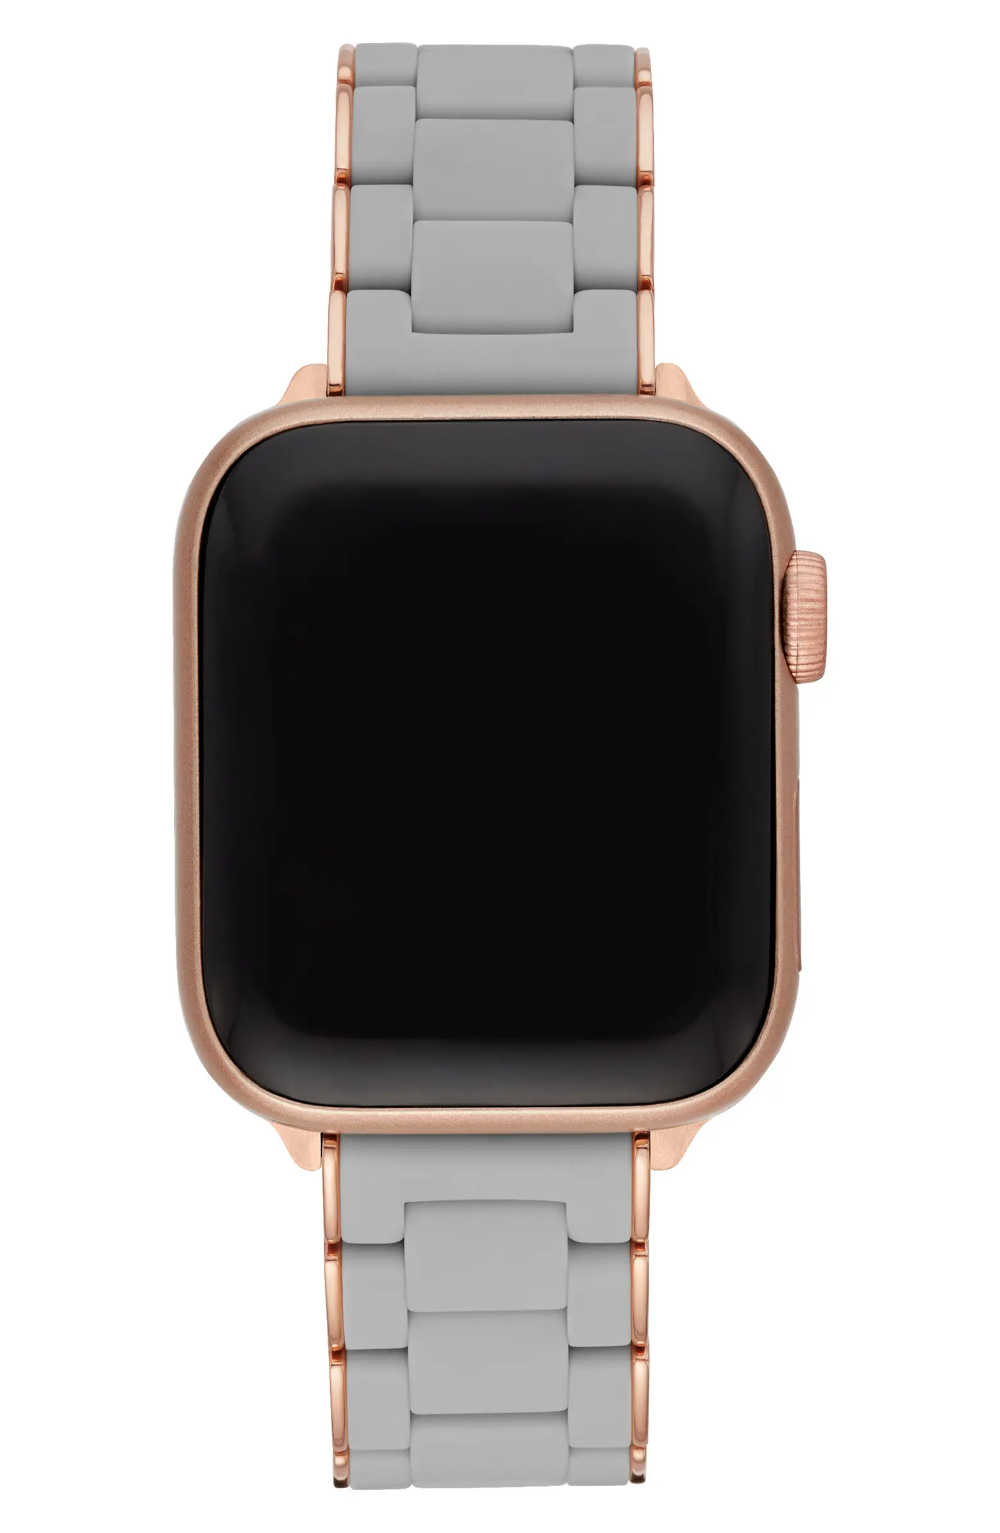 Michele Apple Watch Wrapped Silicone Bracelet Strap Nordstrom Apple Watch Fashion Apple Watch Bracelets Apple Watch Strap